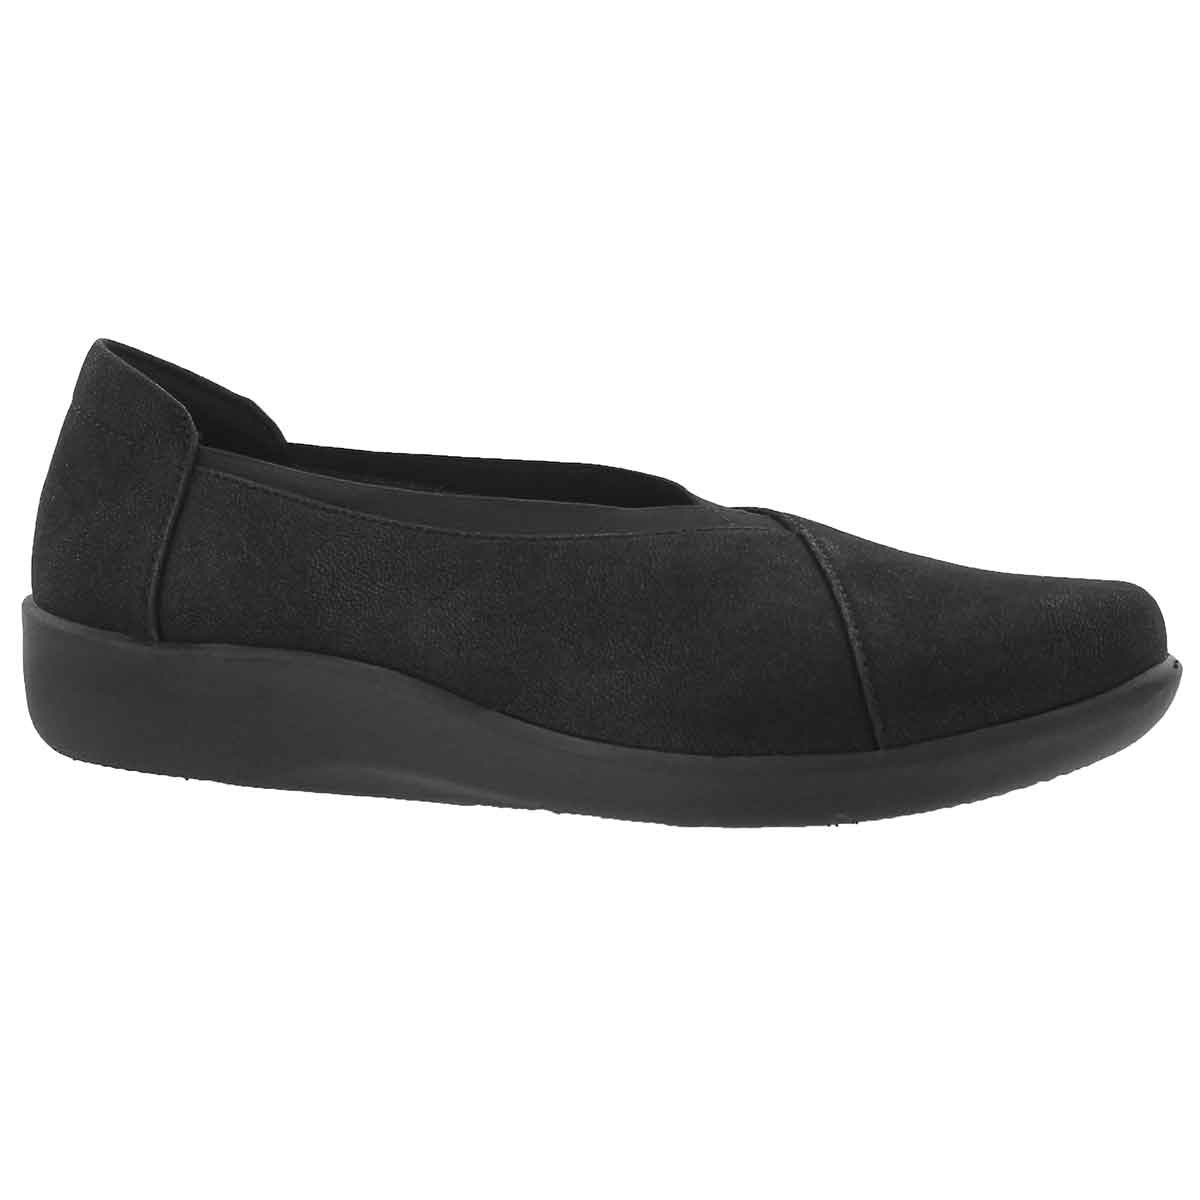 Women's SILLIAN HOLLY black casual loafers